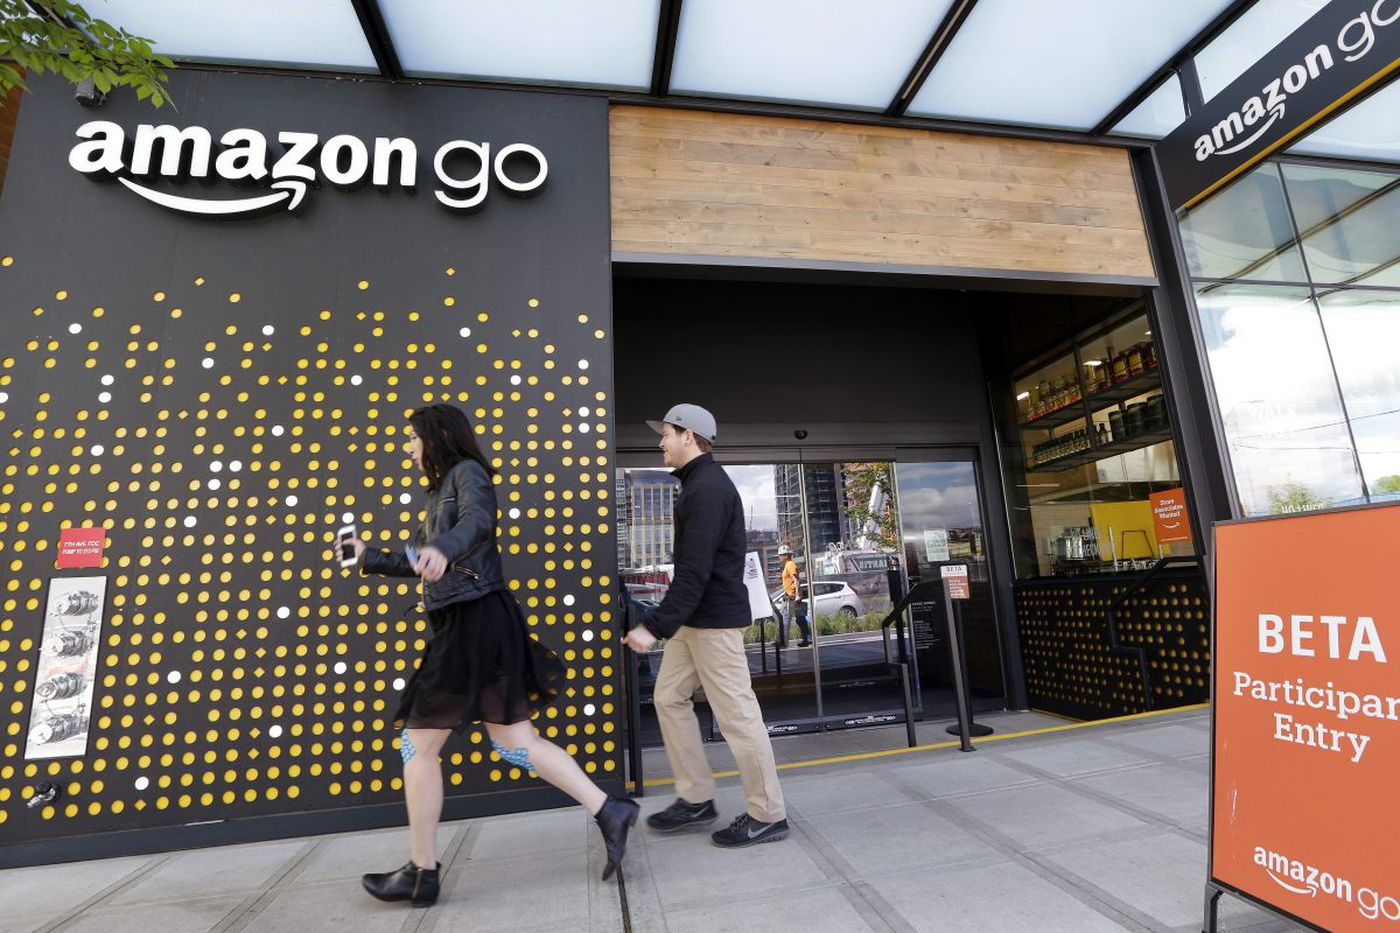 Amazon's pointless obsession with cashiers | Opinion